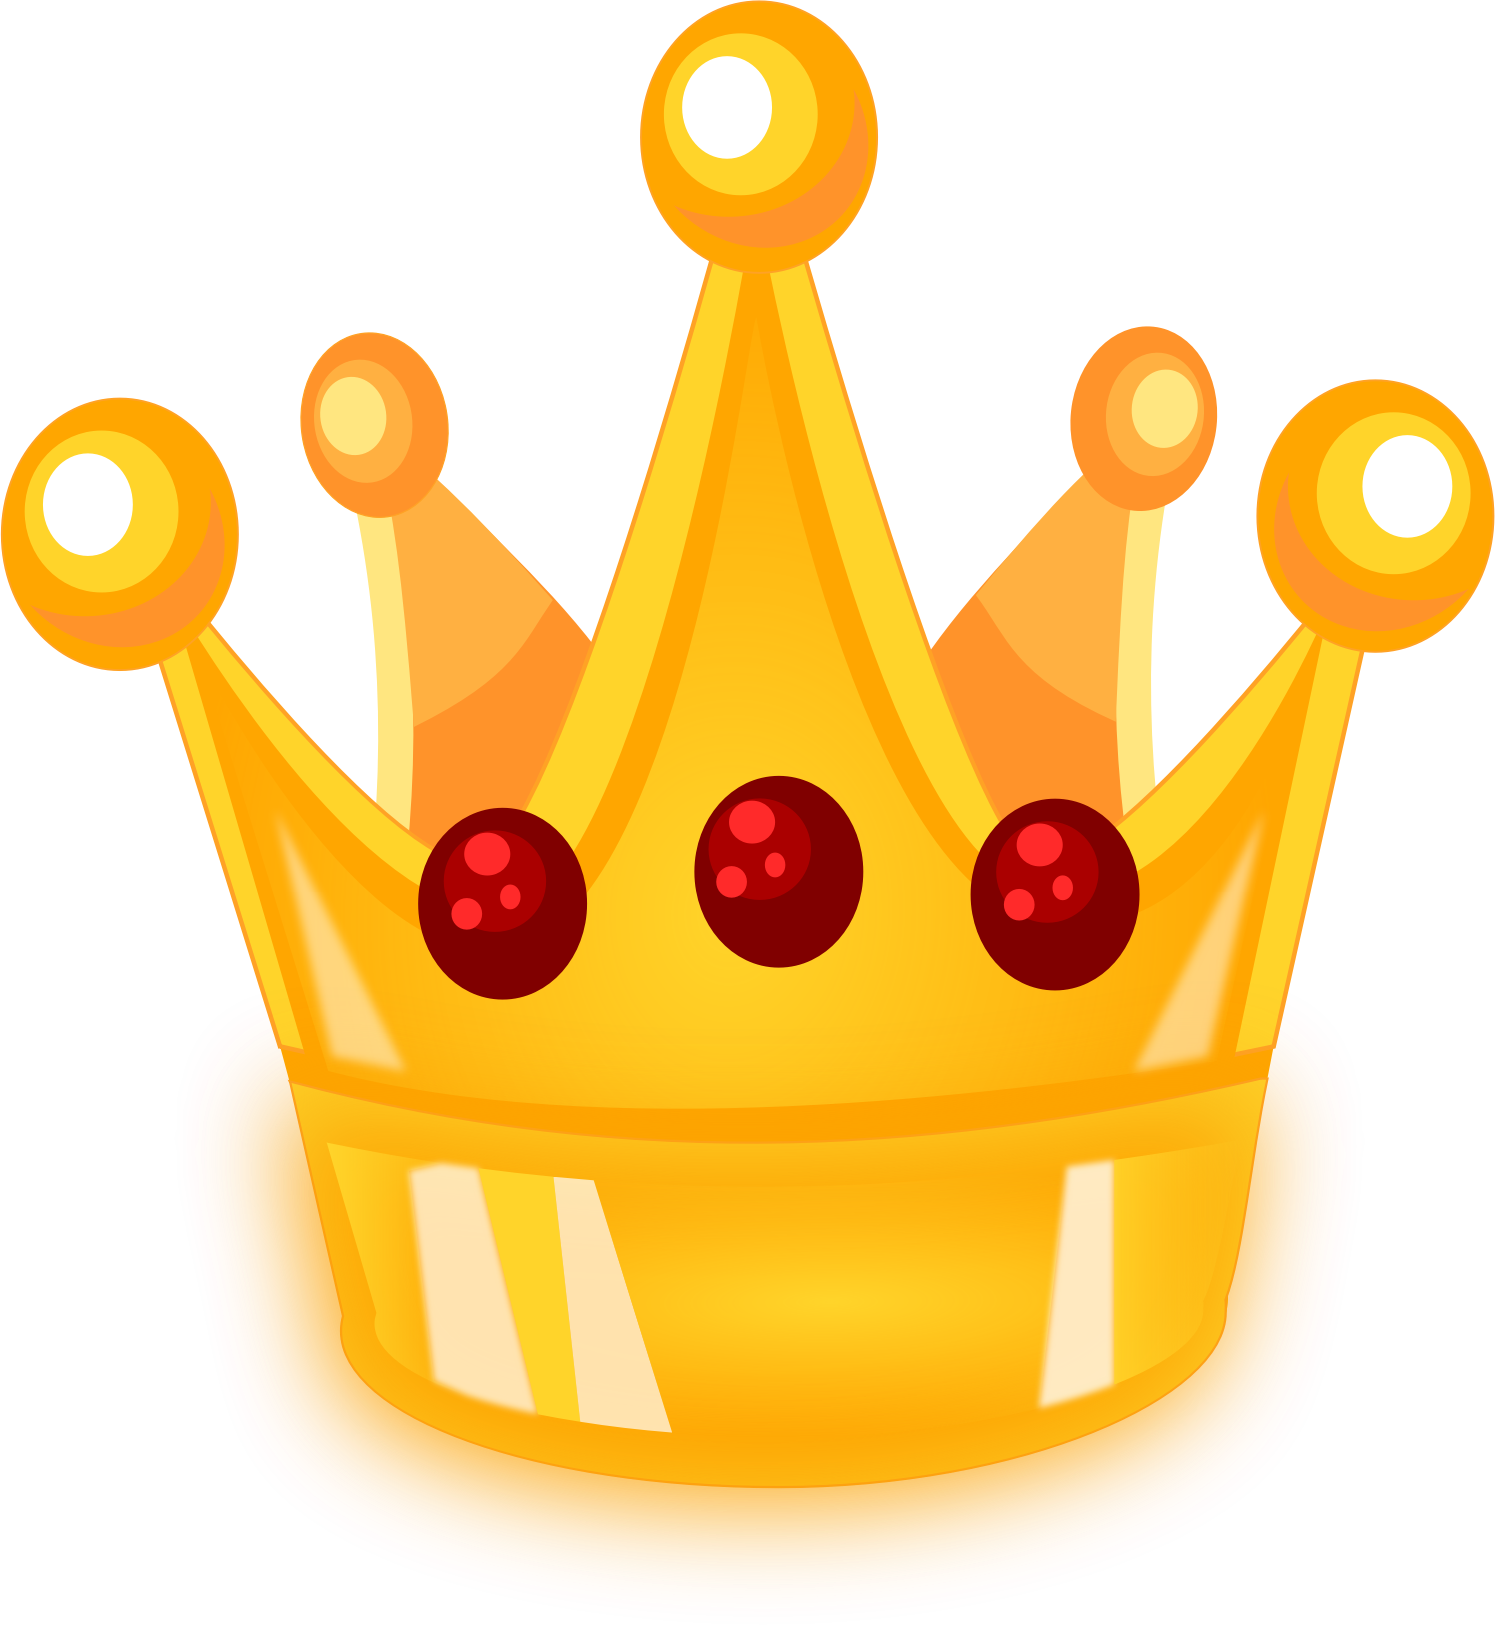 Crown clip art clear background. Royal with no icons